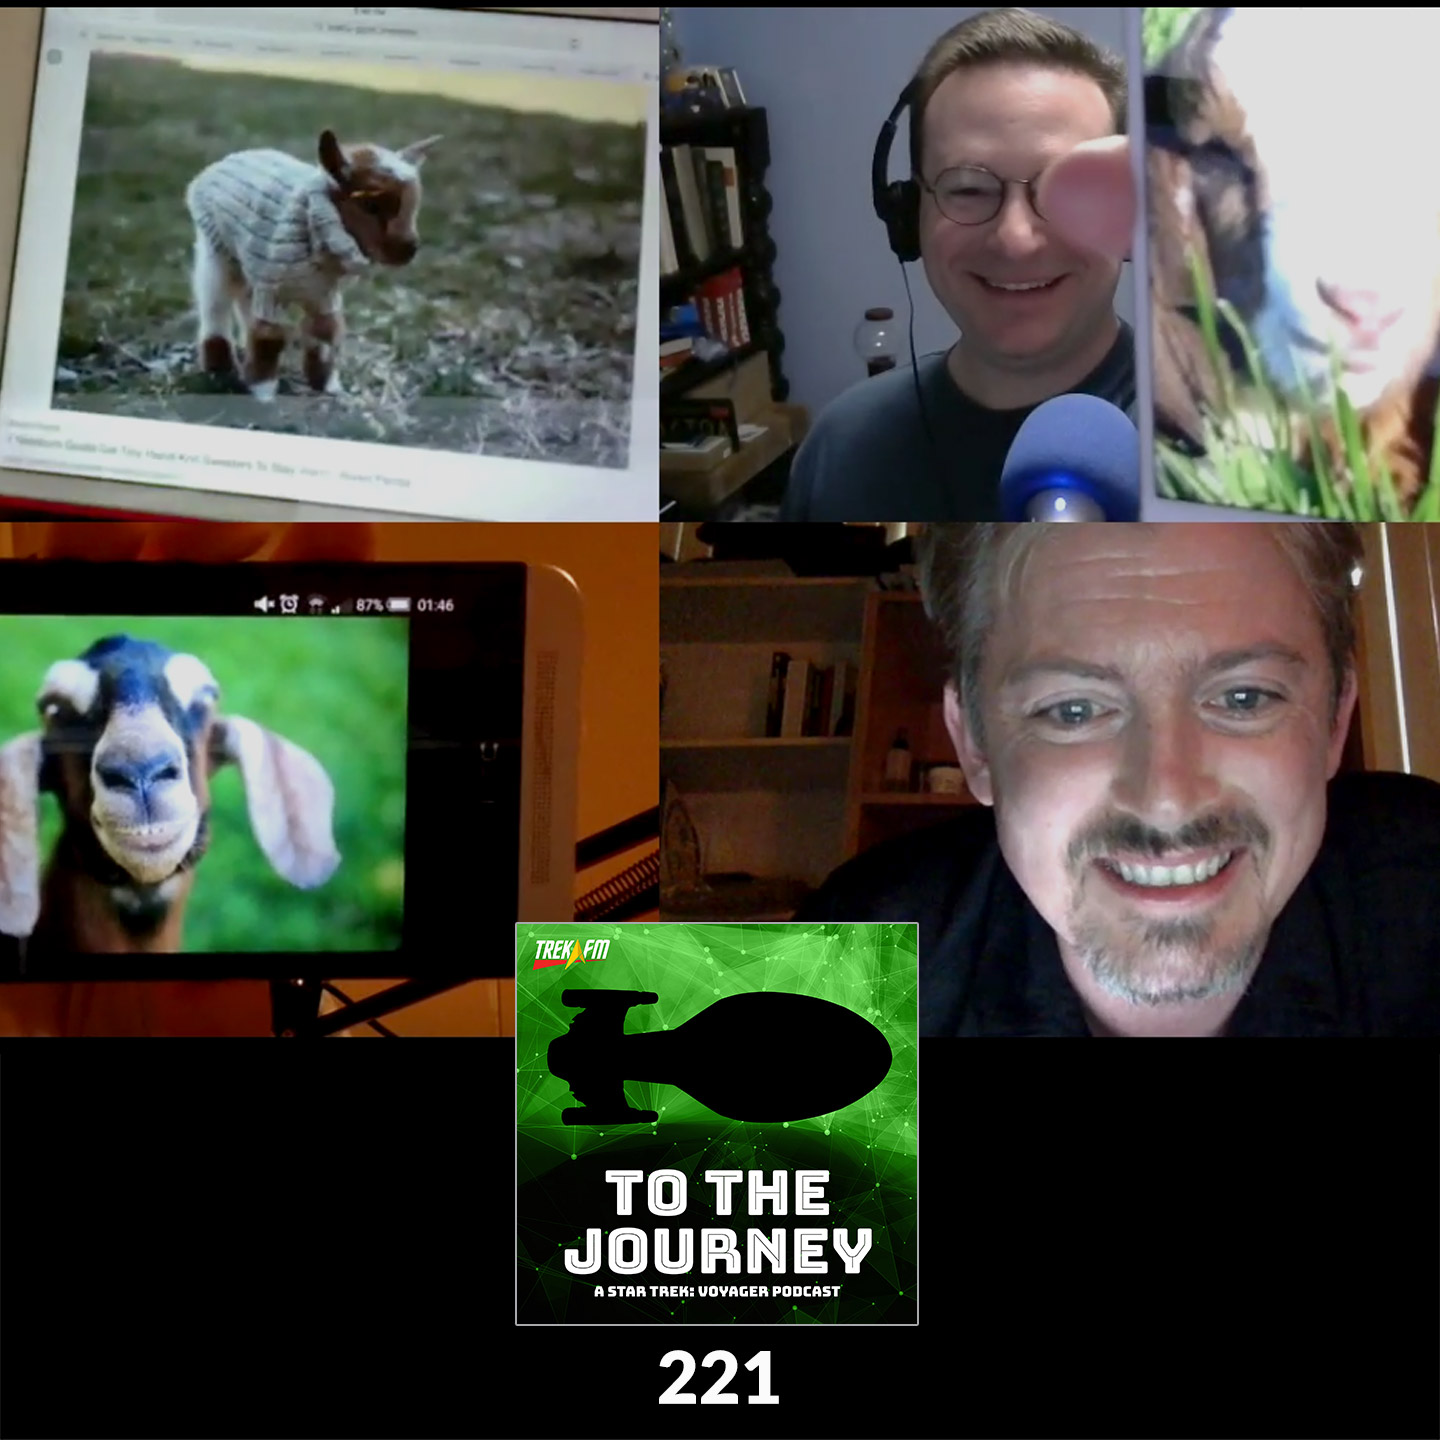 To The Journey 221: Shades of Manu - The Clip Show.